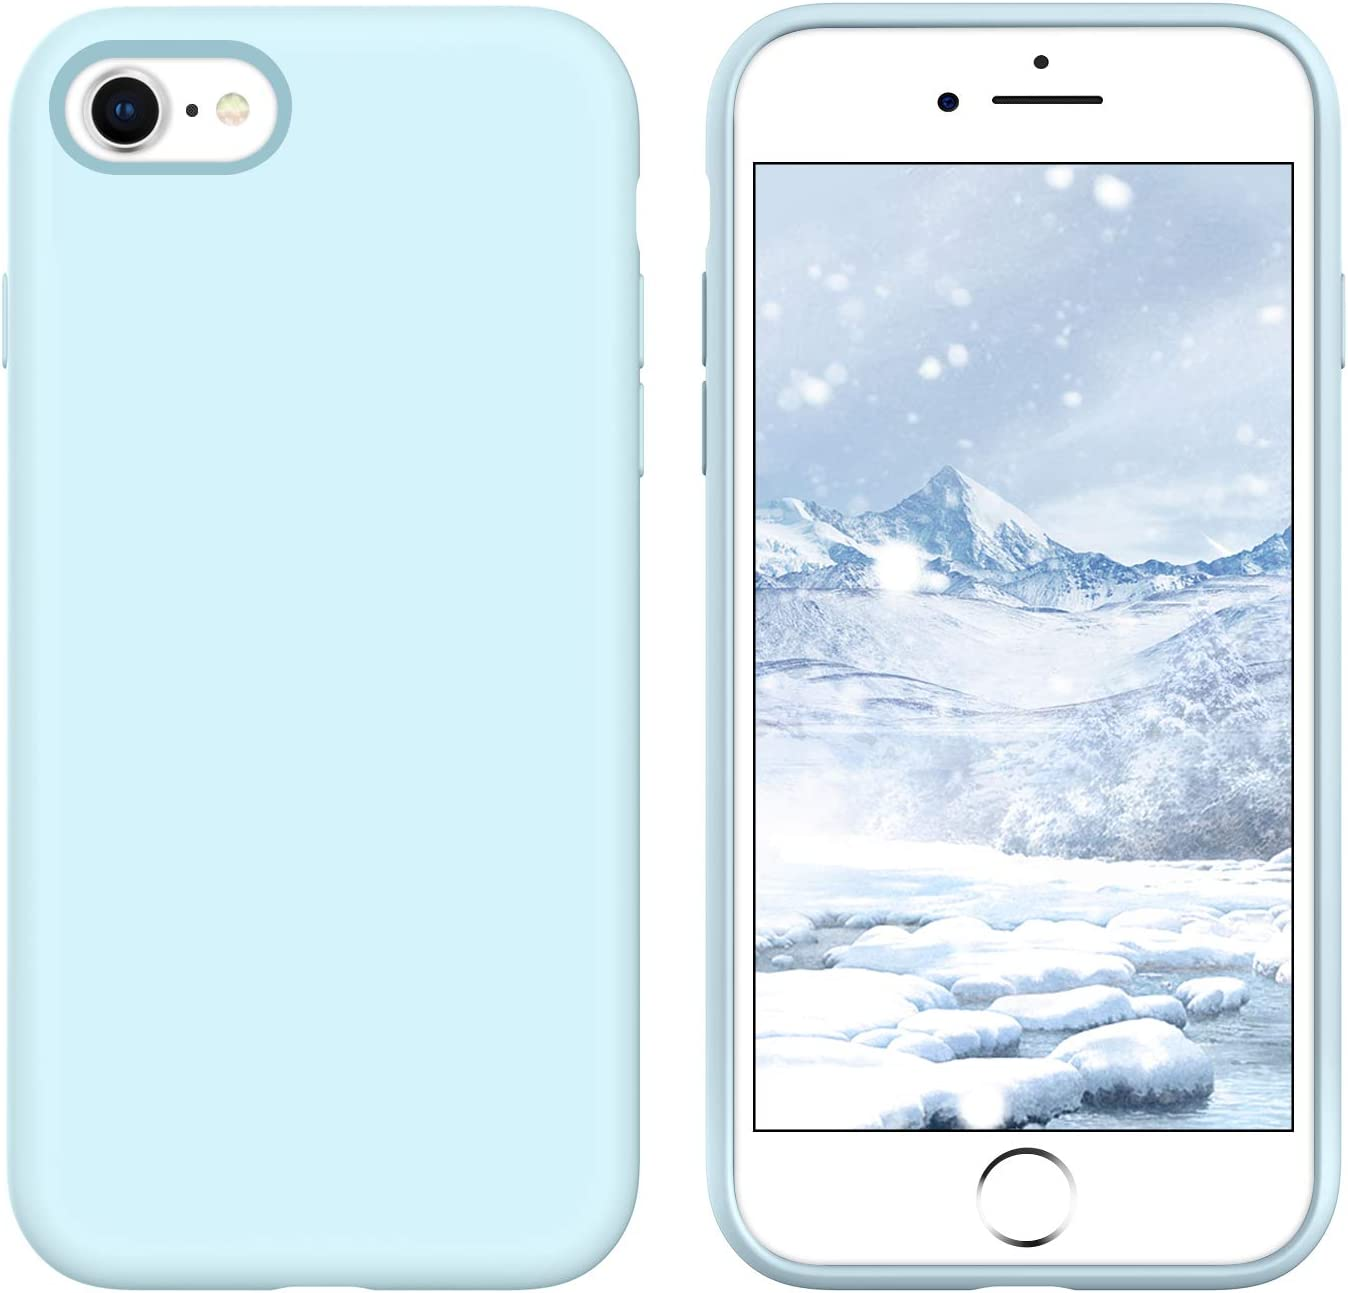 GUAGUA iPhone SE 2020 Case iPhone 8 Case iPhone 7 Case 4.7-inch Liquid Silicone Soft Gel Slim Microfiber Lining Cushion Texture Cover Shockproof Protective Cases for iPhone 8/7/SE 2020 Sky Blue